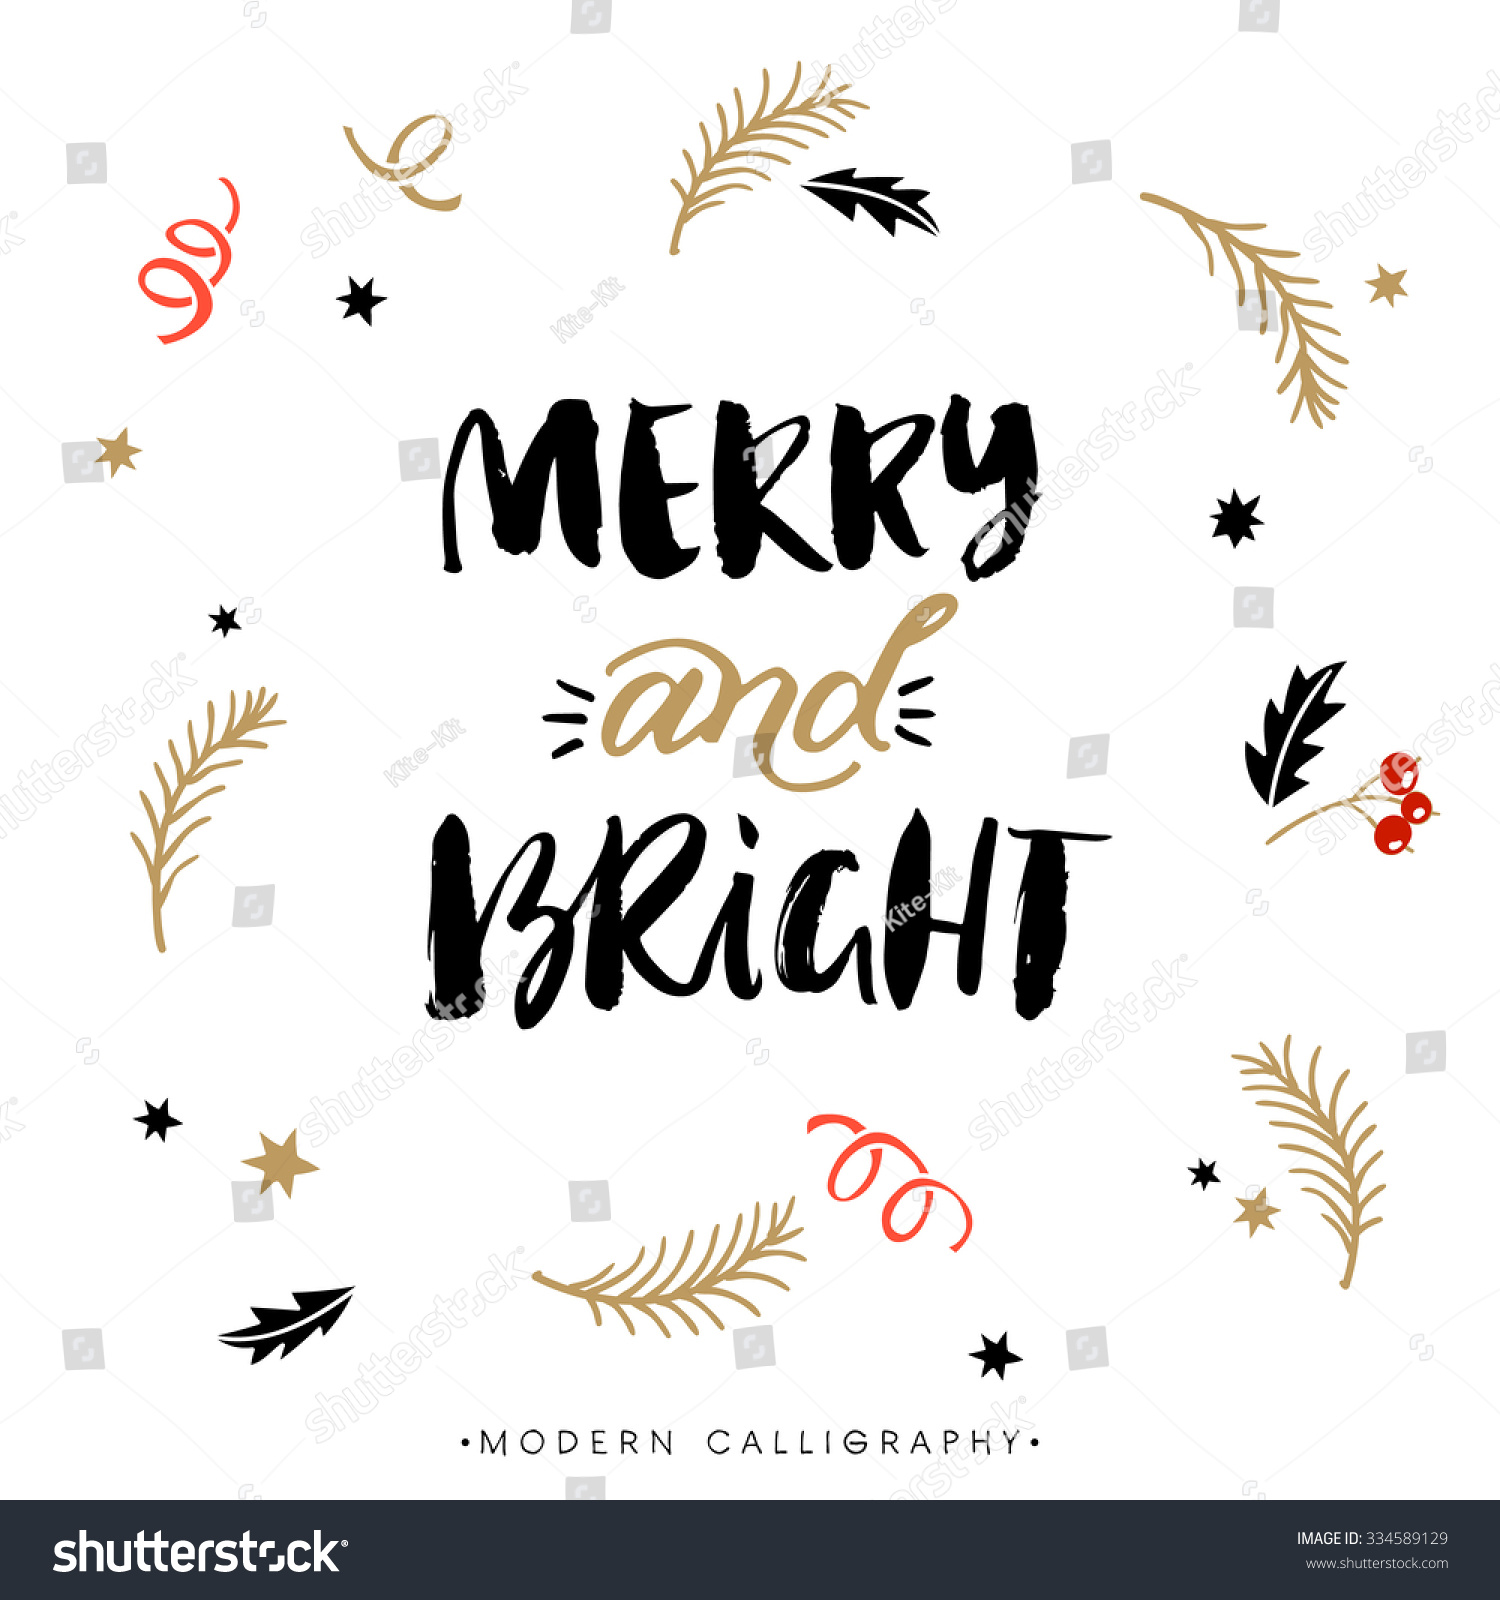 Merry and bright christmas calligraphy handwritten